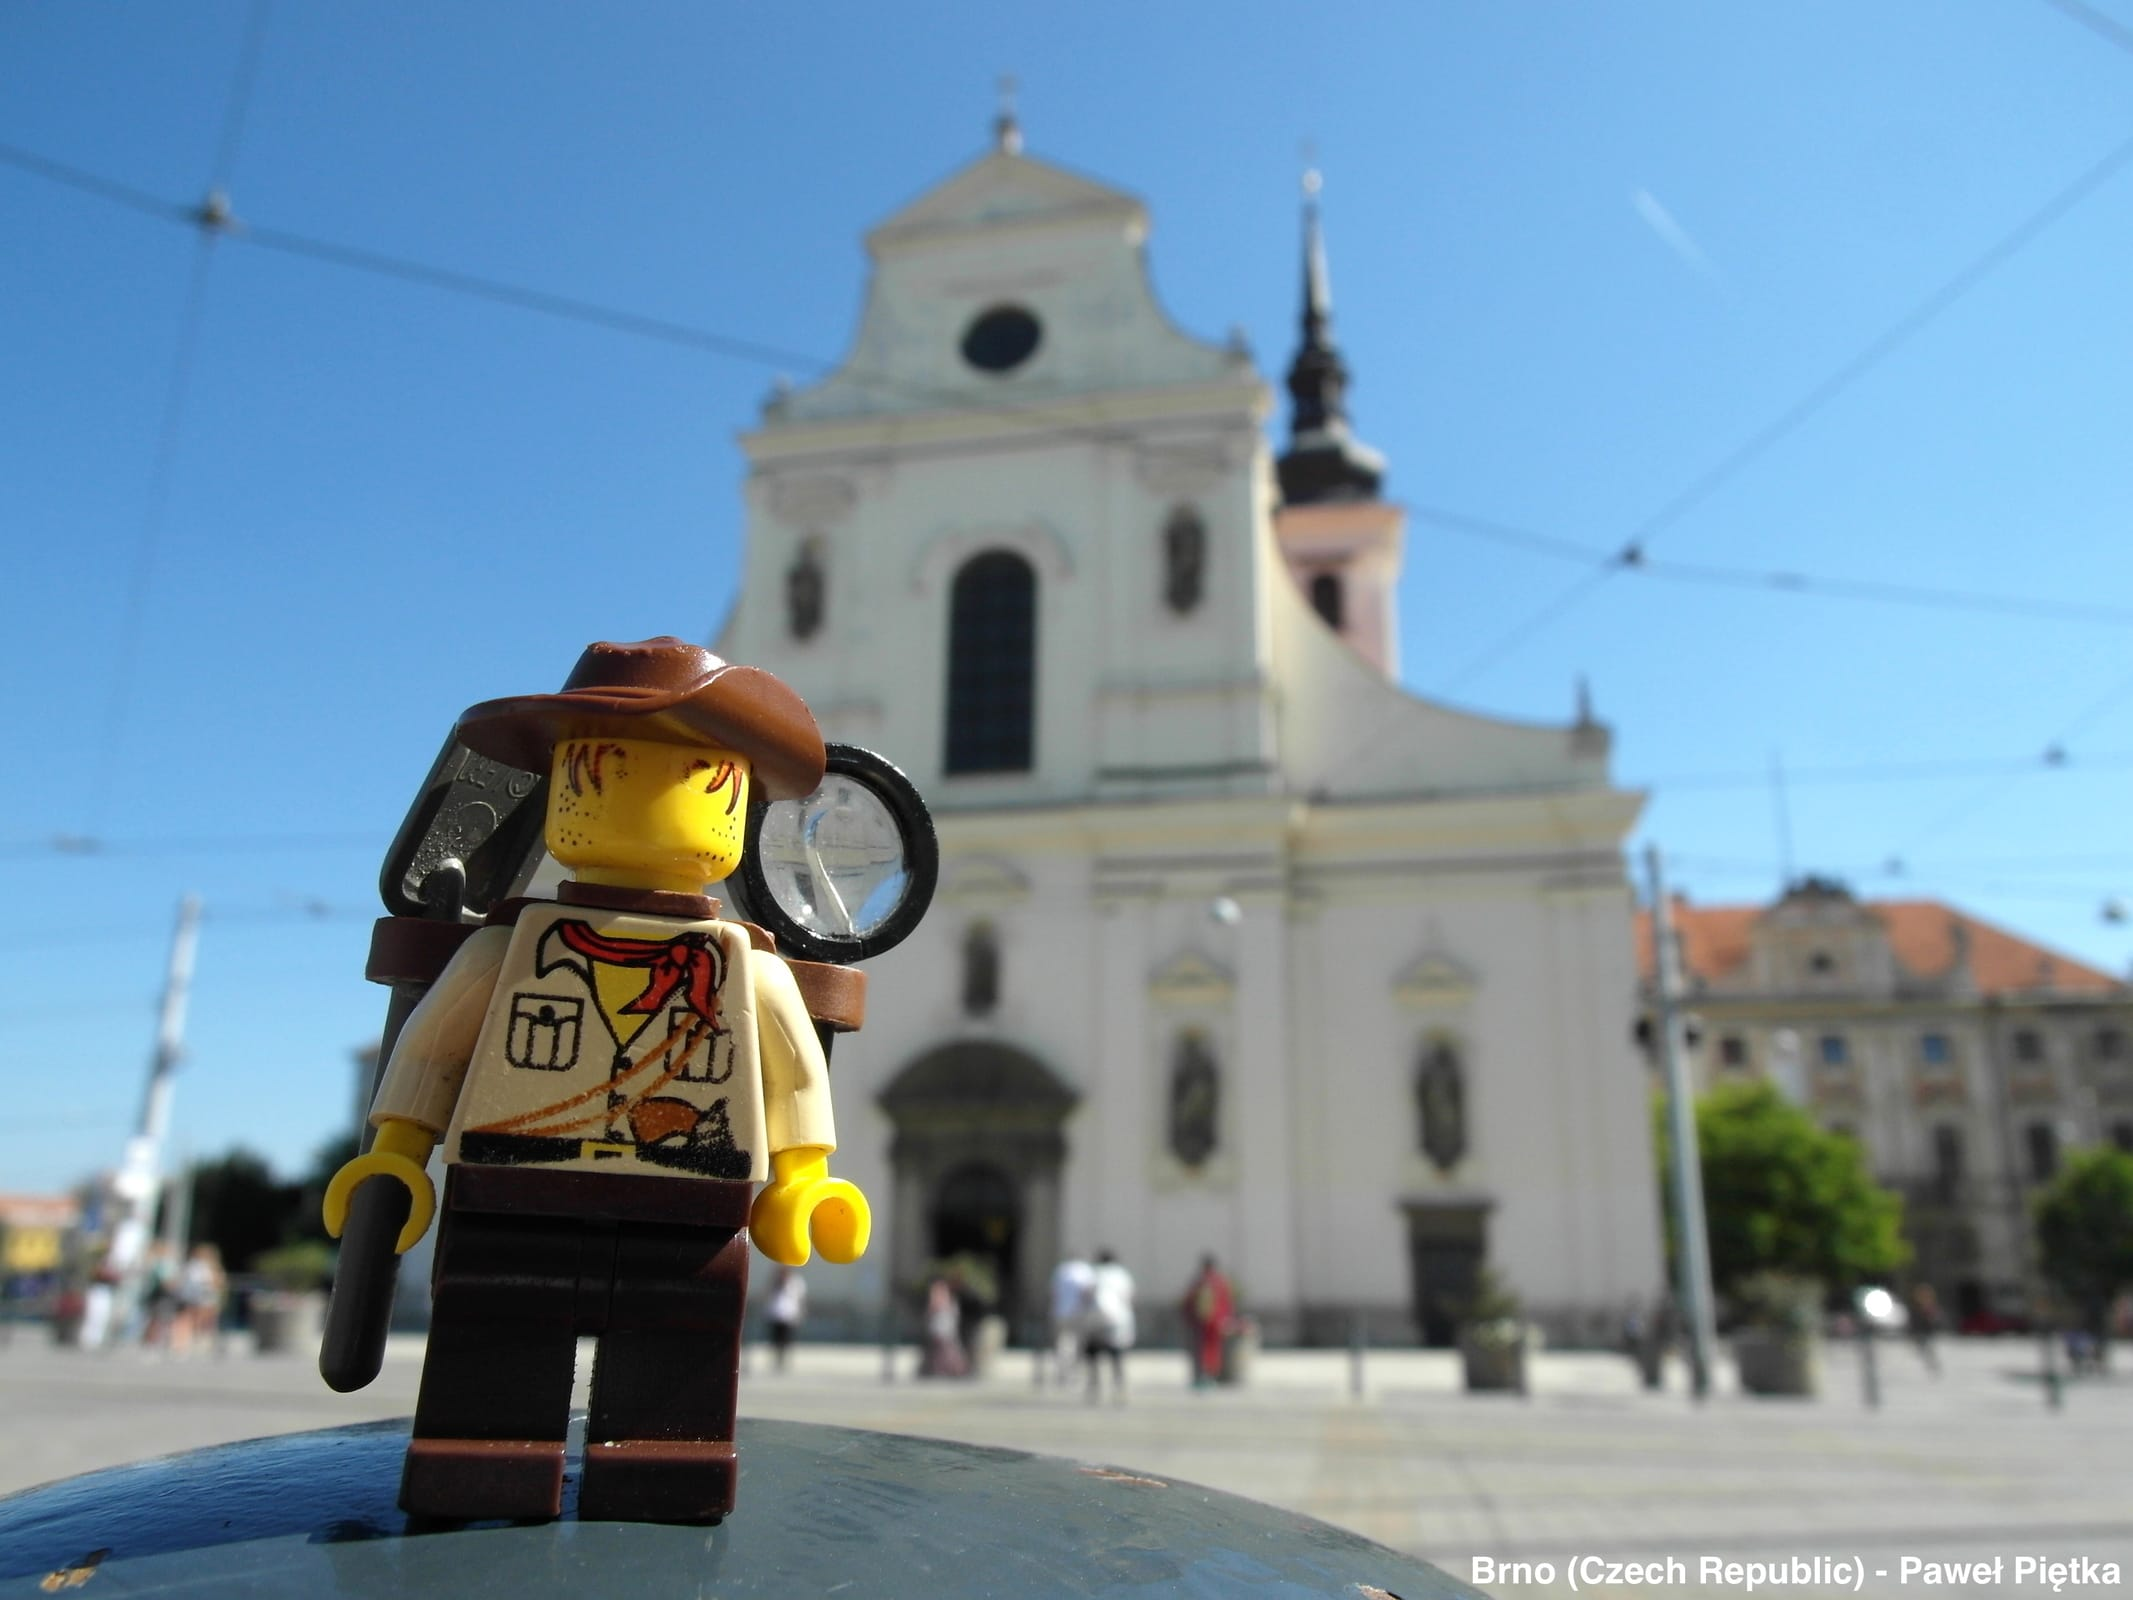 Brno (Czech Republic) - Church of St Thomas